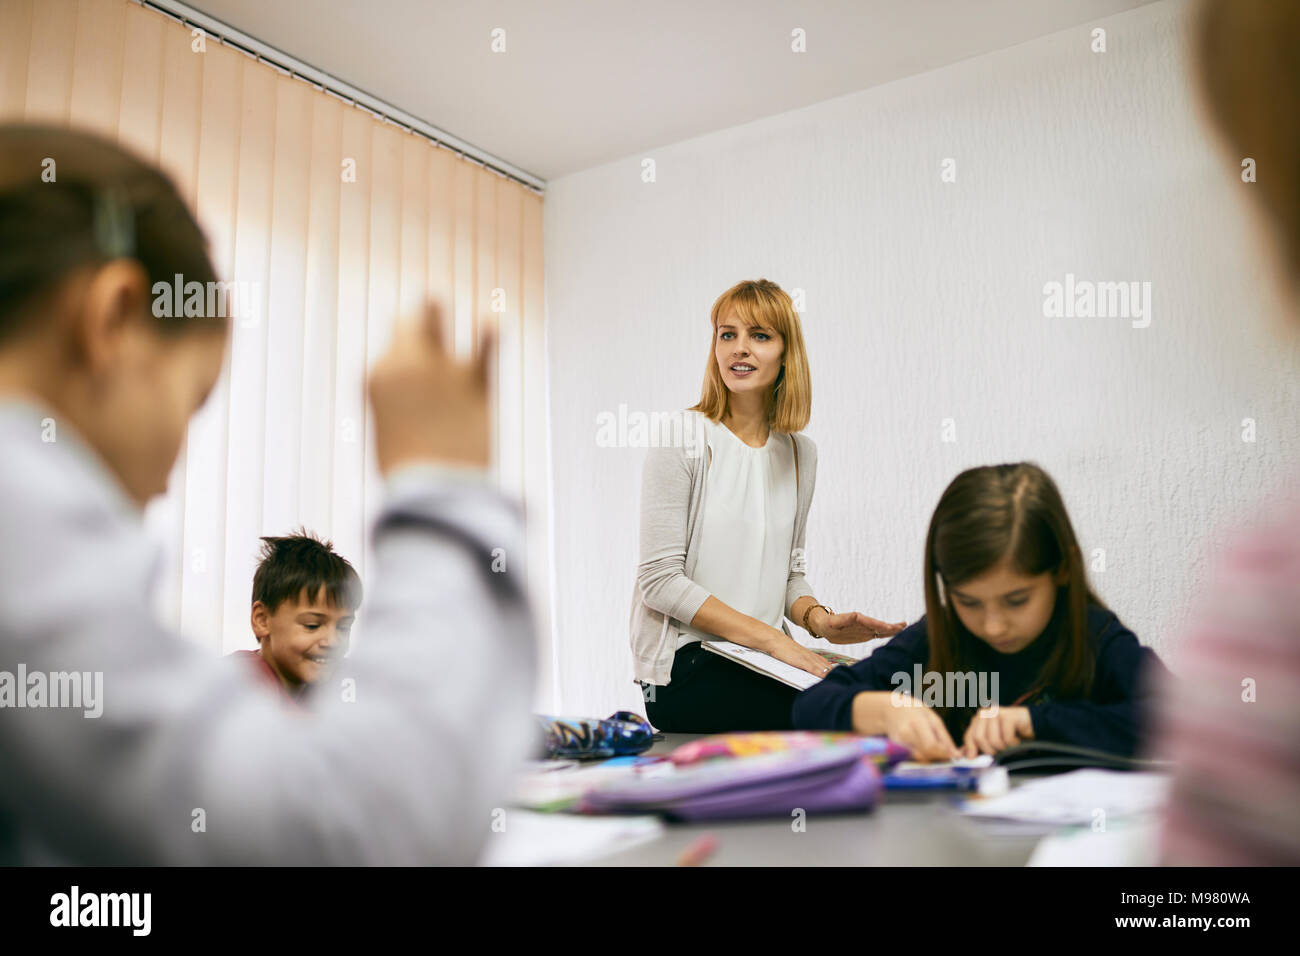 Teacher with students in class - Stock Image